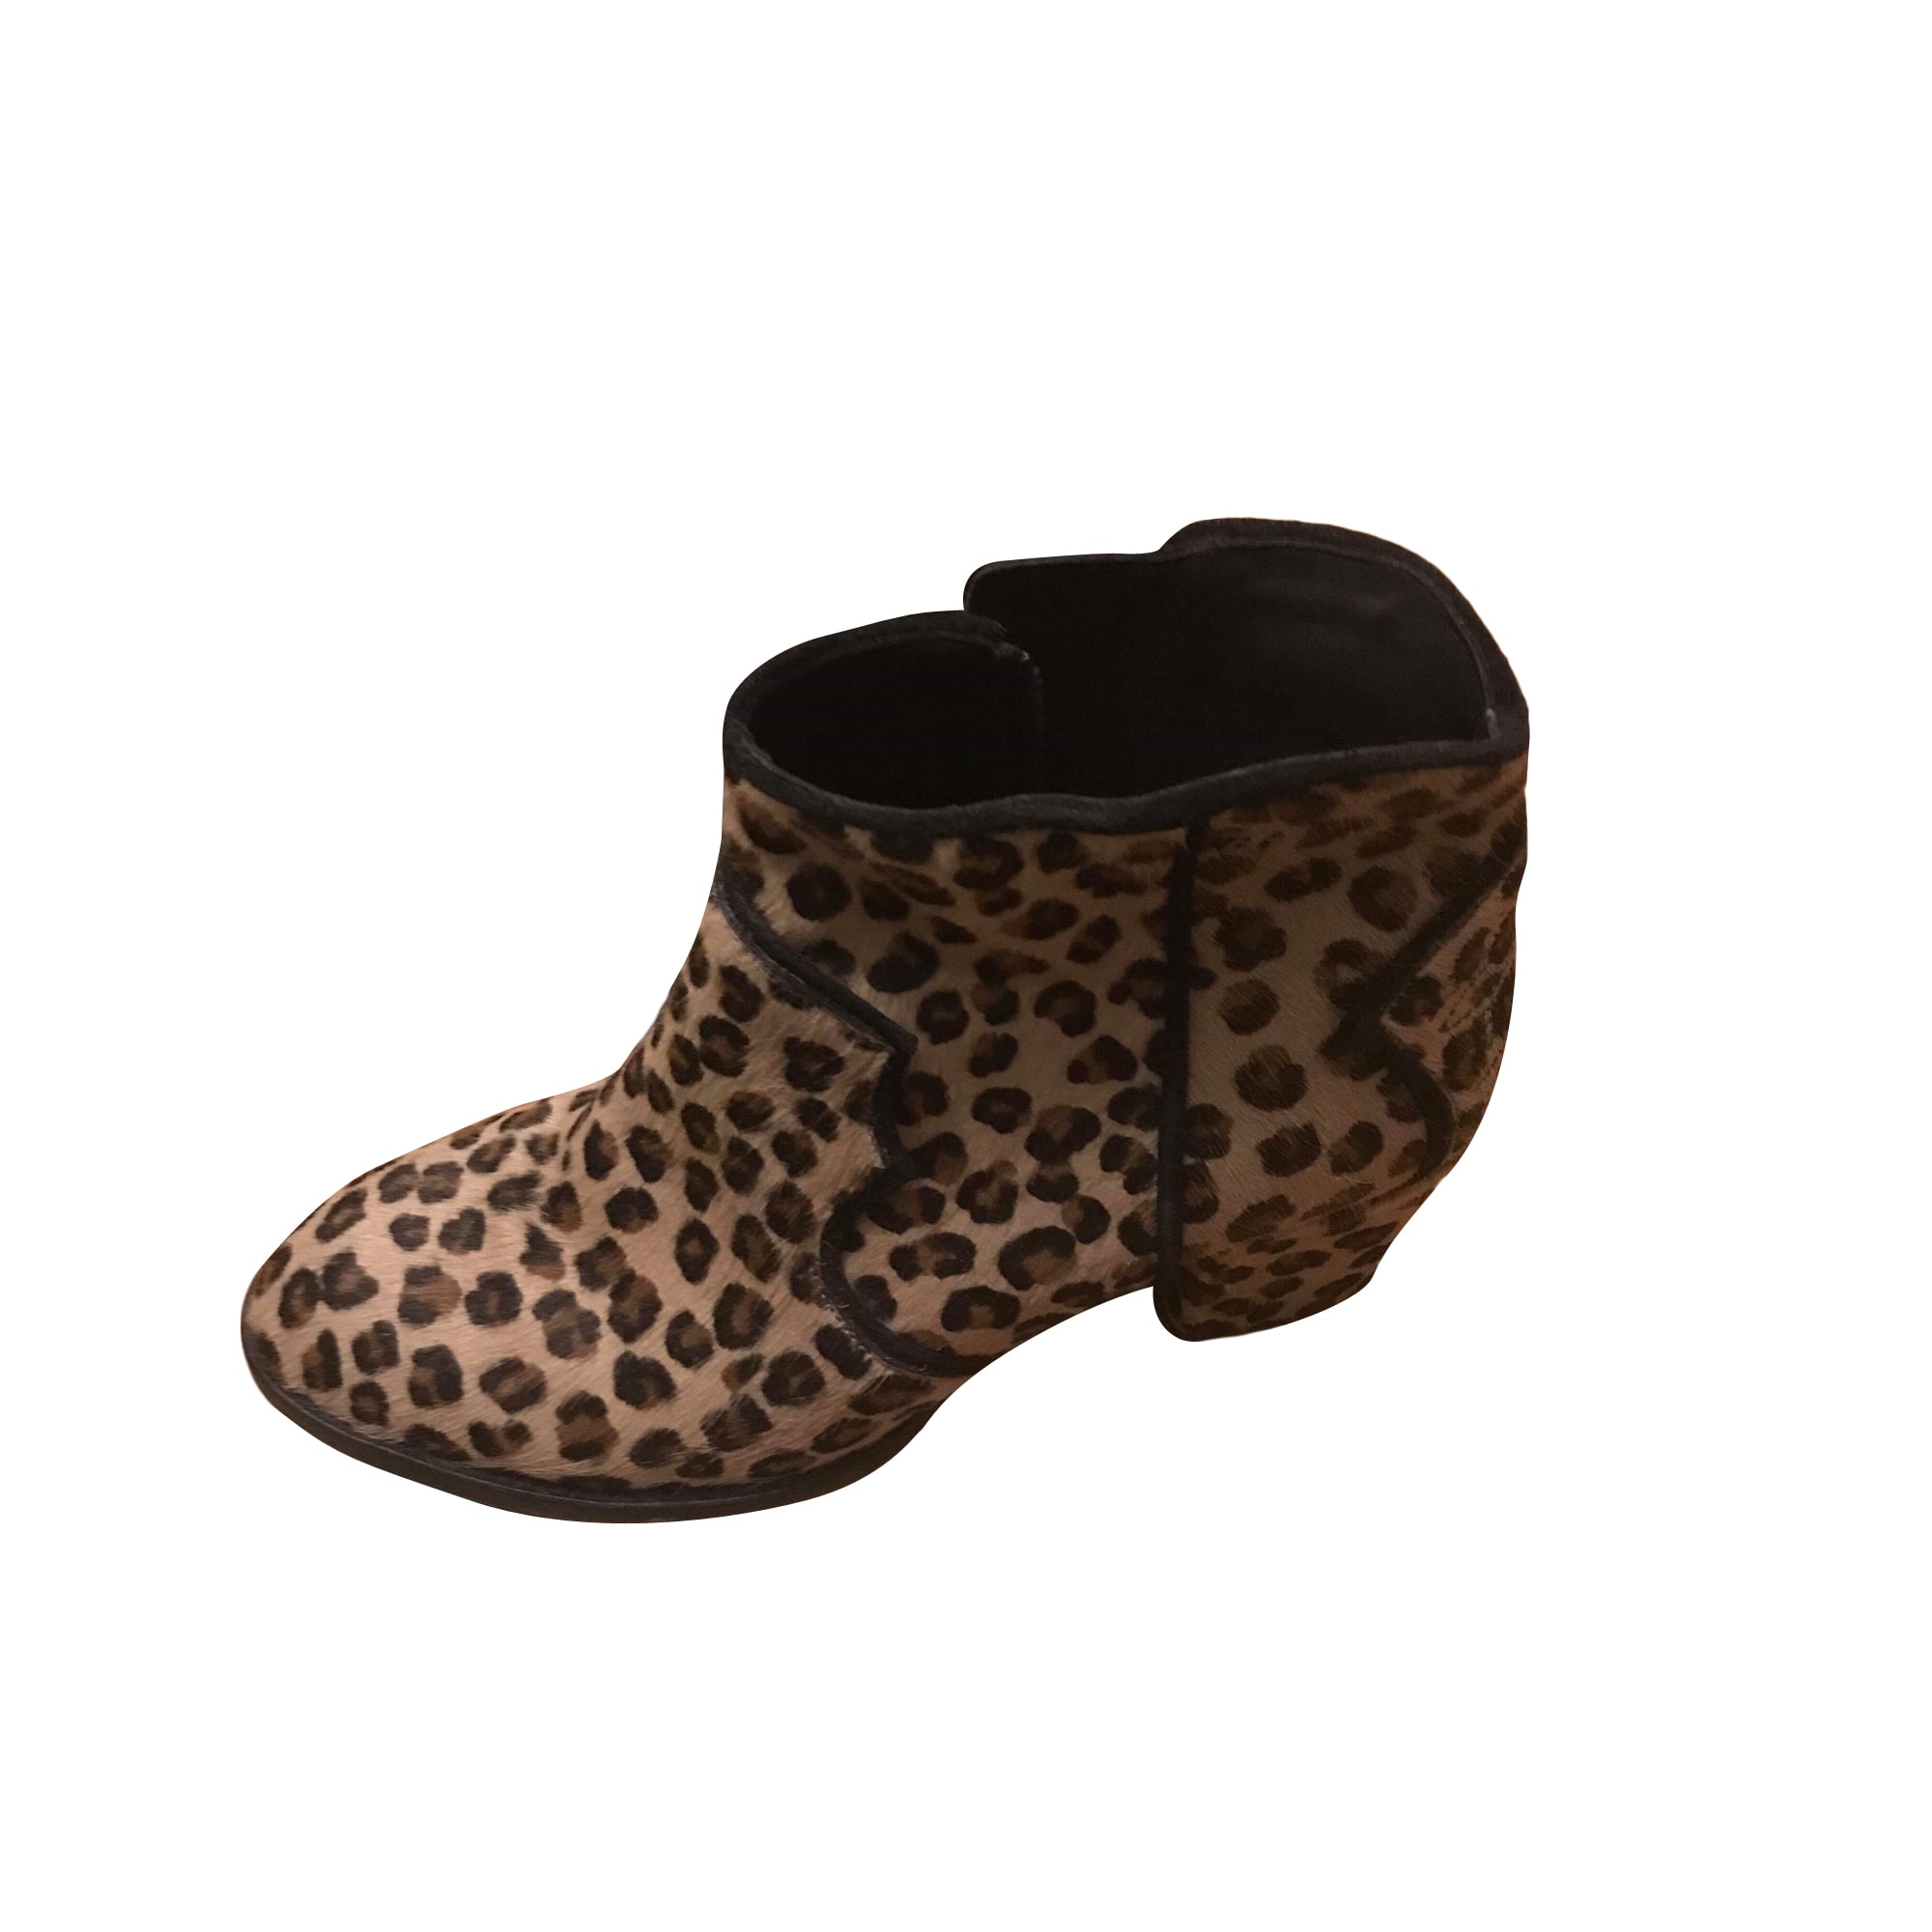 High Heel Ankle Boots ZADIG & VOLTAIRE Leopard